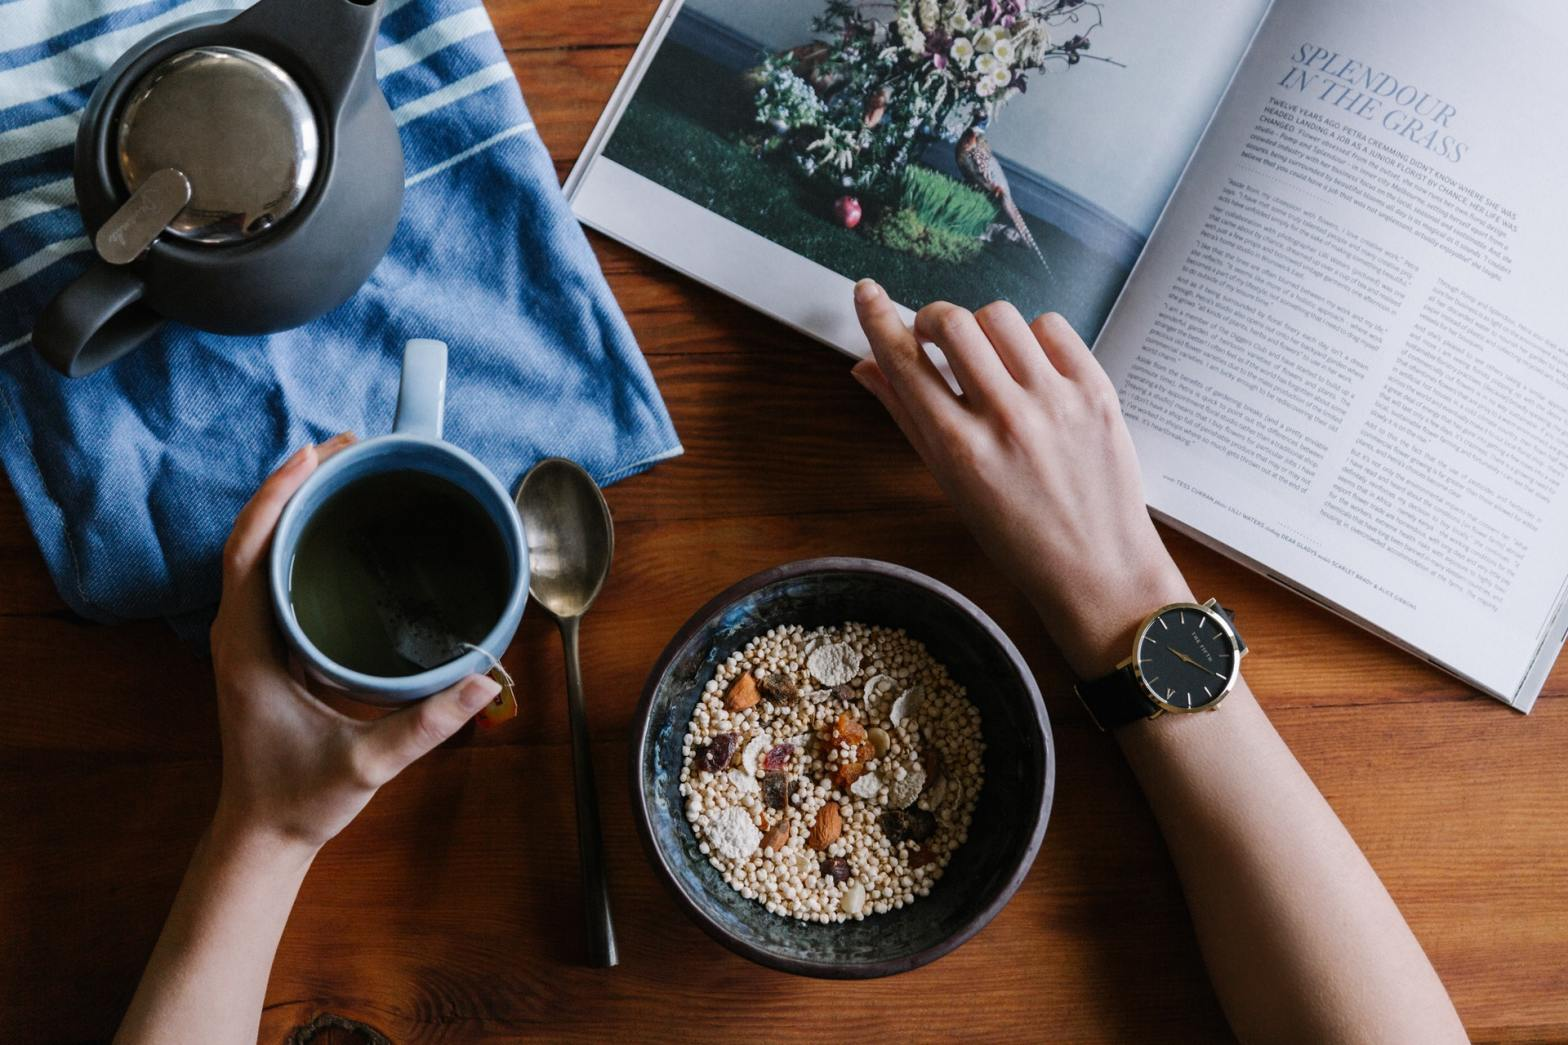 Person sitting at a table reading a book with a bowl of cereal and cup of tea